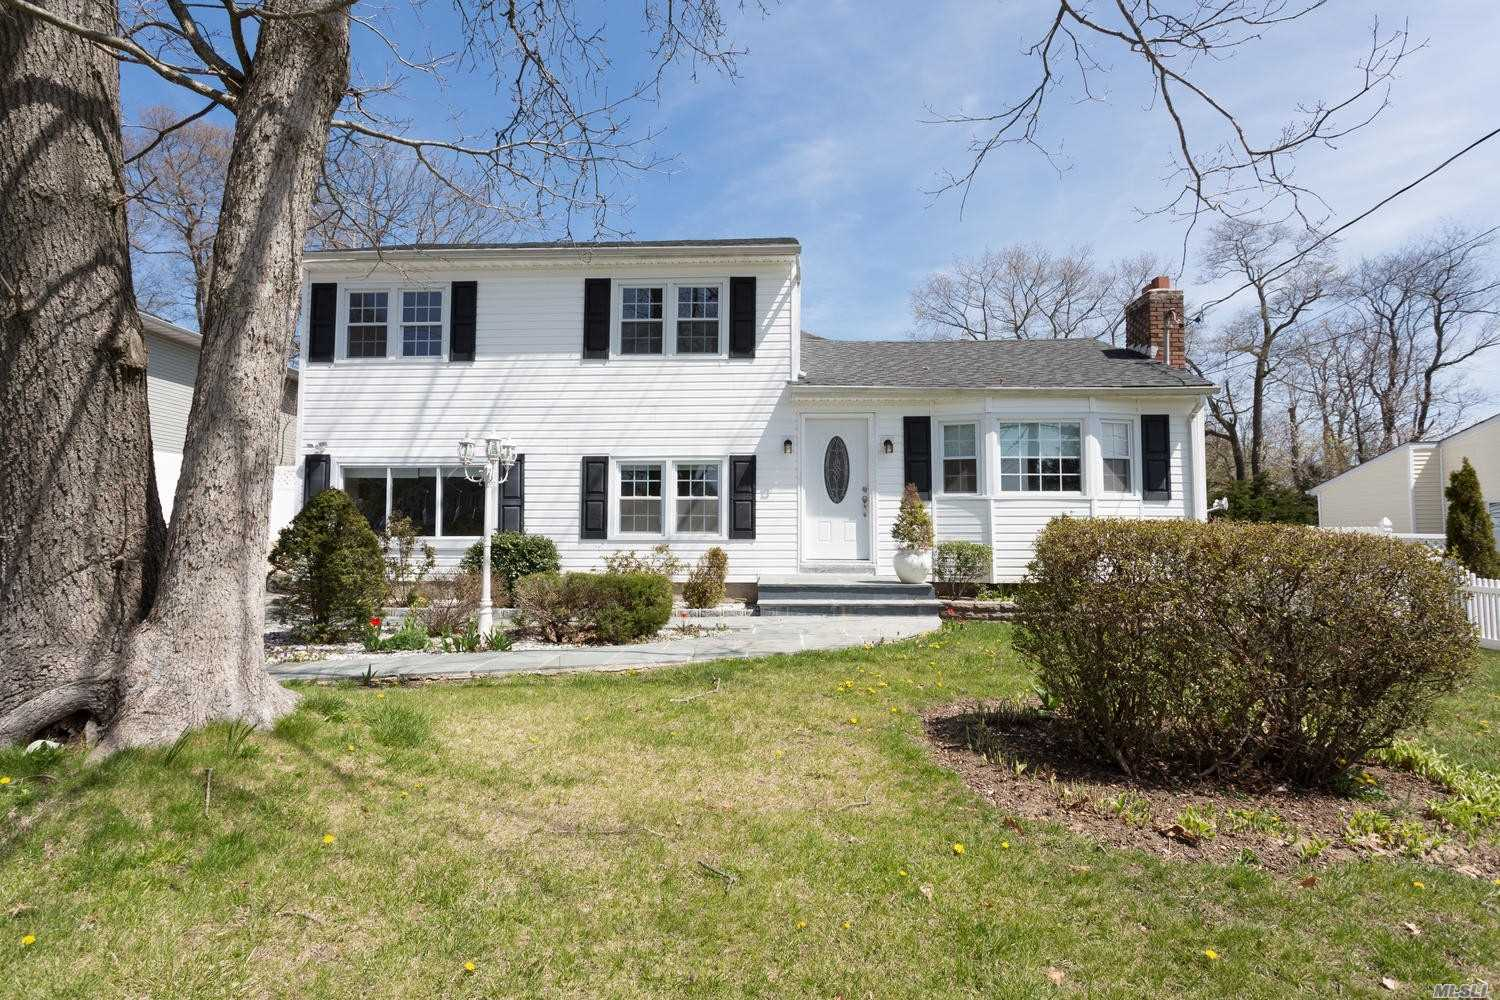 Beautiful & Pristine Home Features: 4 Bedrooms, 3 Full Baths, Large Eat-In Kitchen With Granite Counters & Stainless Steel Appliances, 3 Seasons Room, Sunken Den With Fireplace In FLR, New Electric Heating System